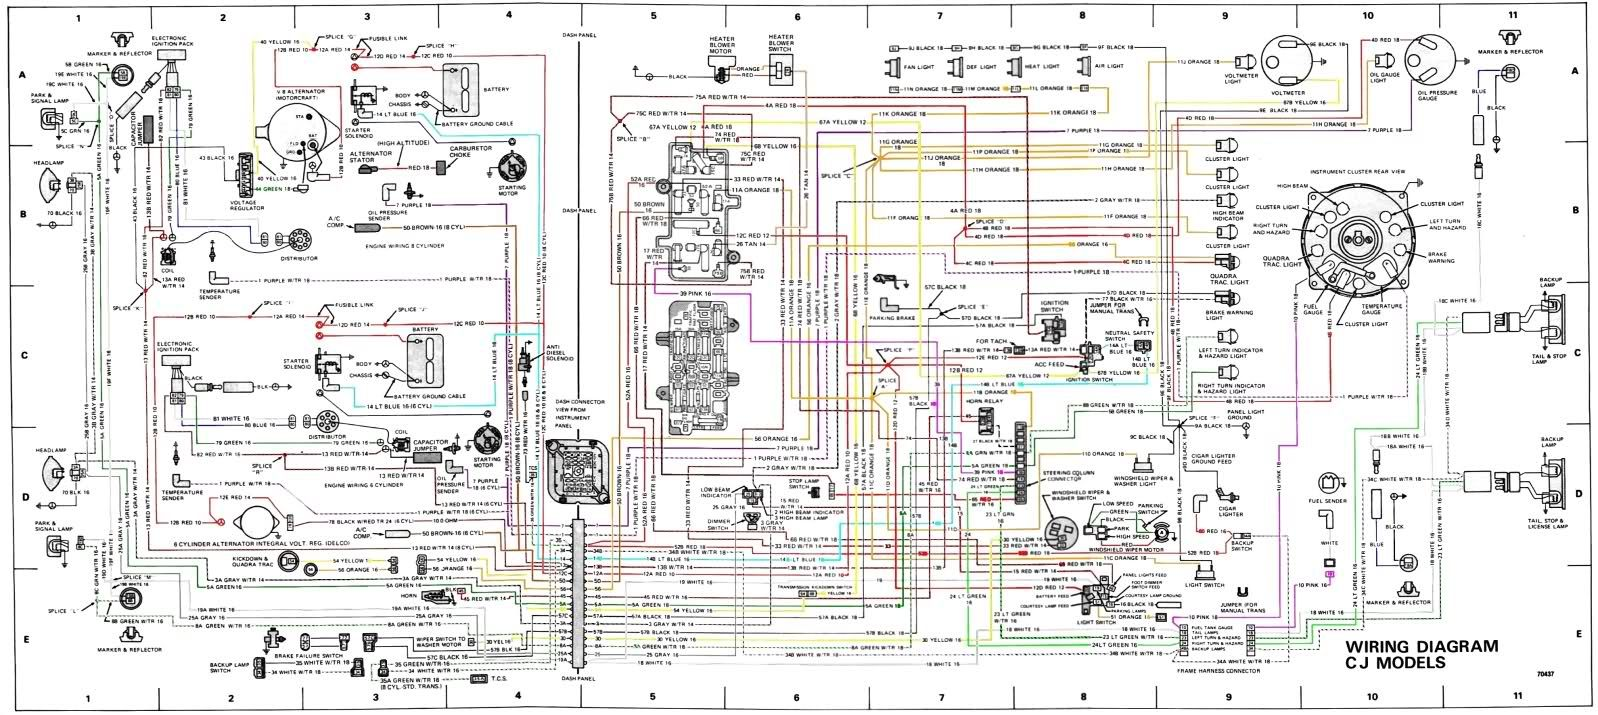 Cj7 Tach Wiring | Wiring Diagram Jeep Cj Tachometer Wiring on jeep cj harness, jeep cj hubs, 1974 cj5 wiring, jeep cj vacuum lines, jeep cj7 electrical schematic, jeep cj stripe kits, jeep cj alternator, hyundai sonata wiring, jeep cj electrical connectors, jeep cj drivetrain, jeep cj horn, jeep cj shifter, jeep cj driveshaft, jeep cj clutch, jeep cj fuel sender, jeep cj proportioning valve, jeep cj antenna, jeep cj rear end, jeep cj coils, jeep cj shift knob,